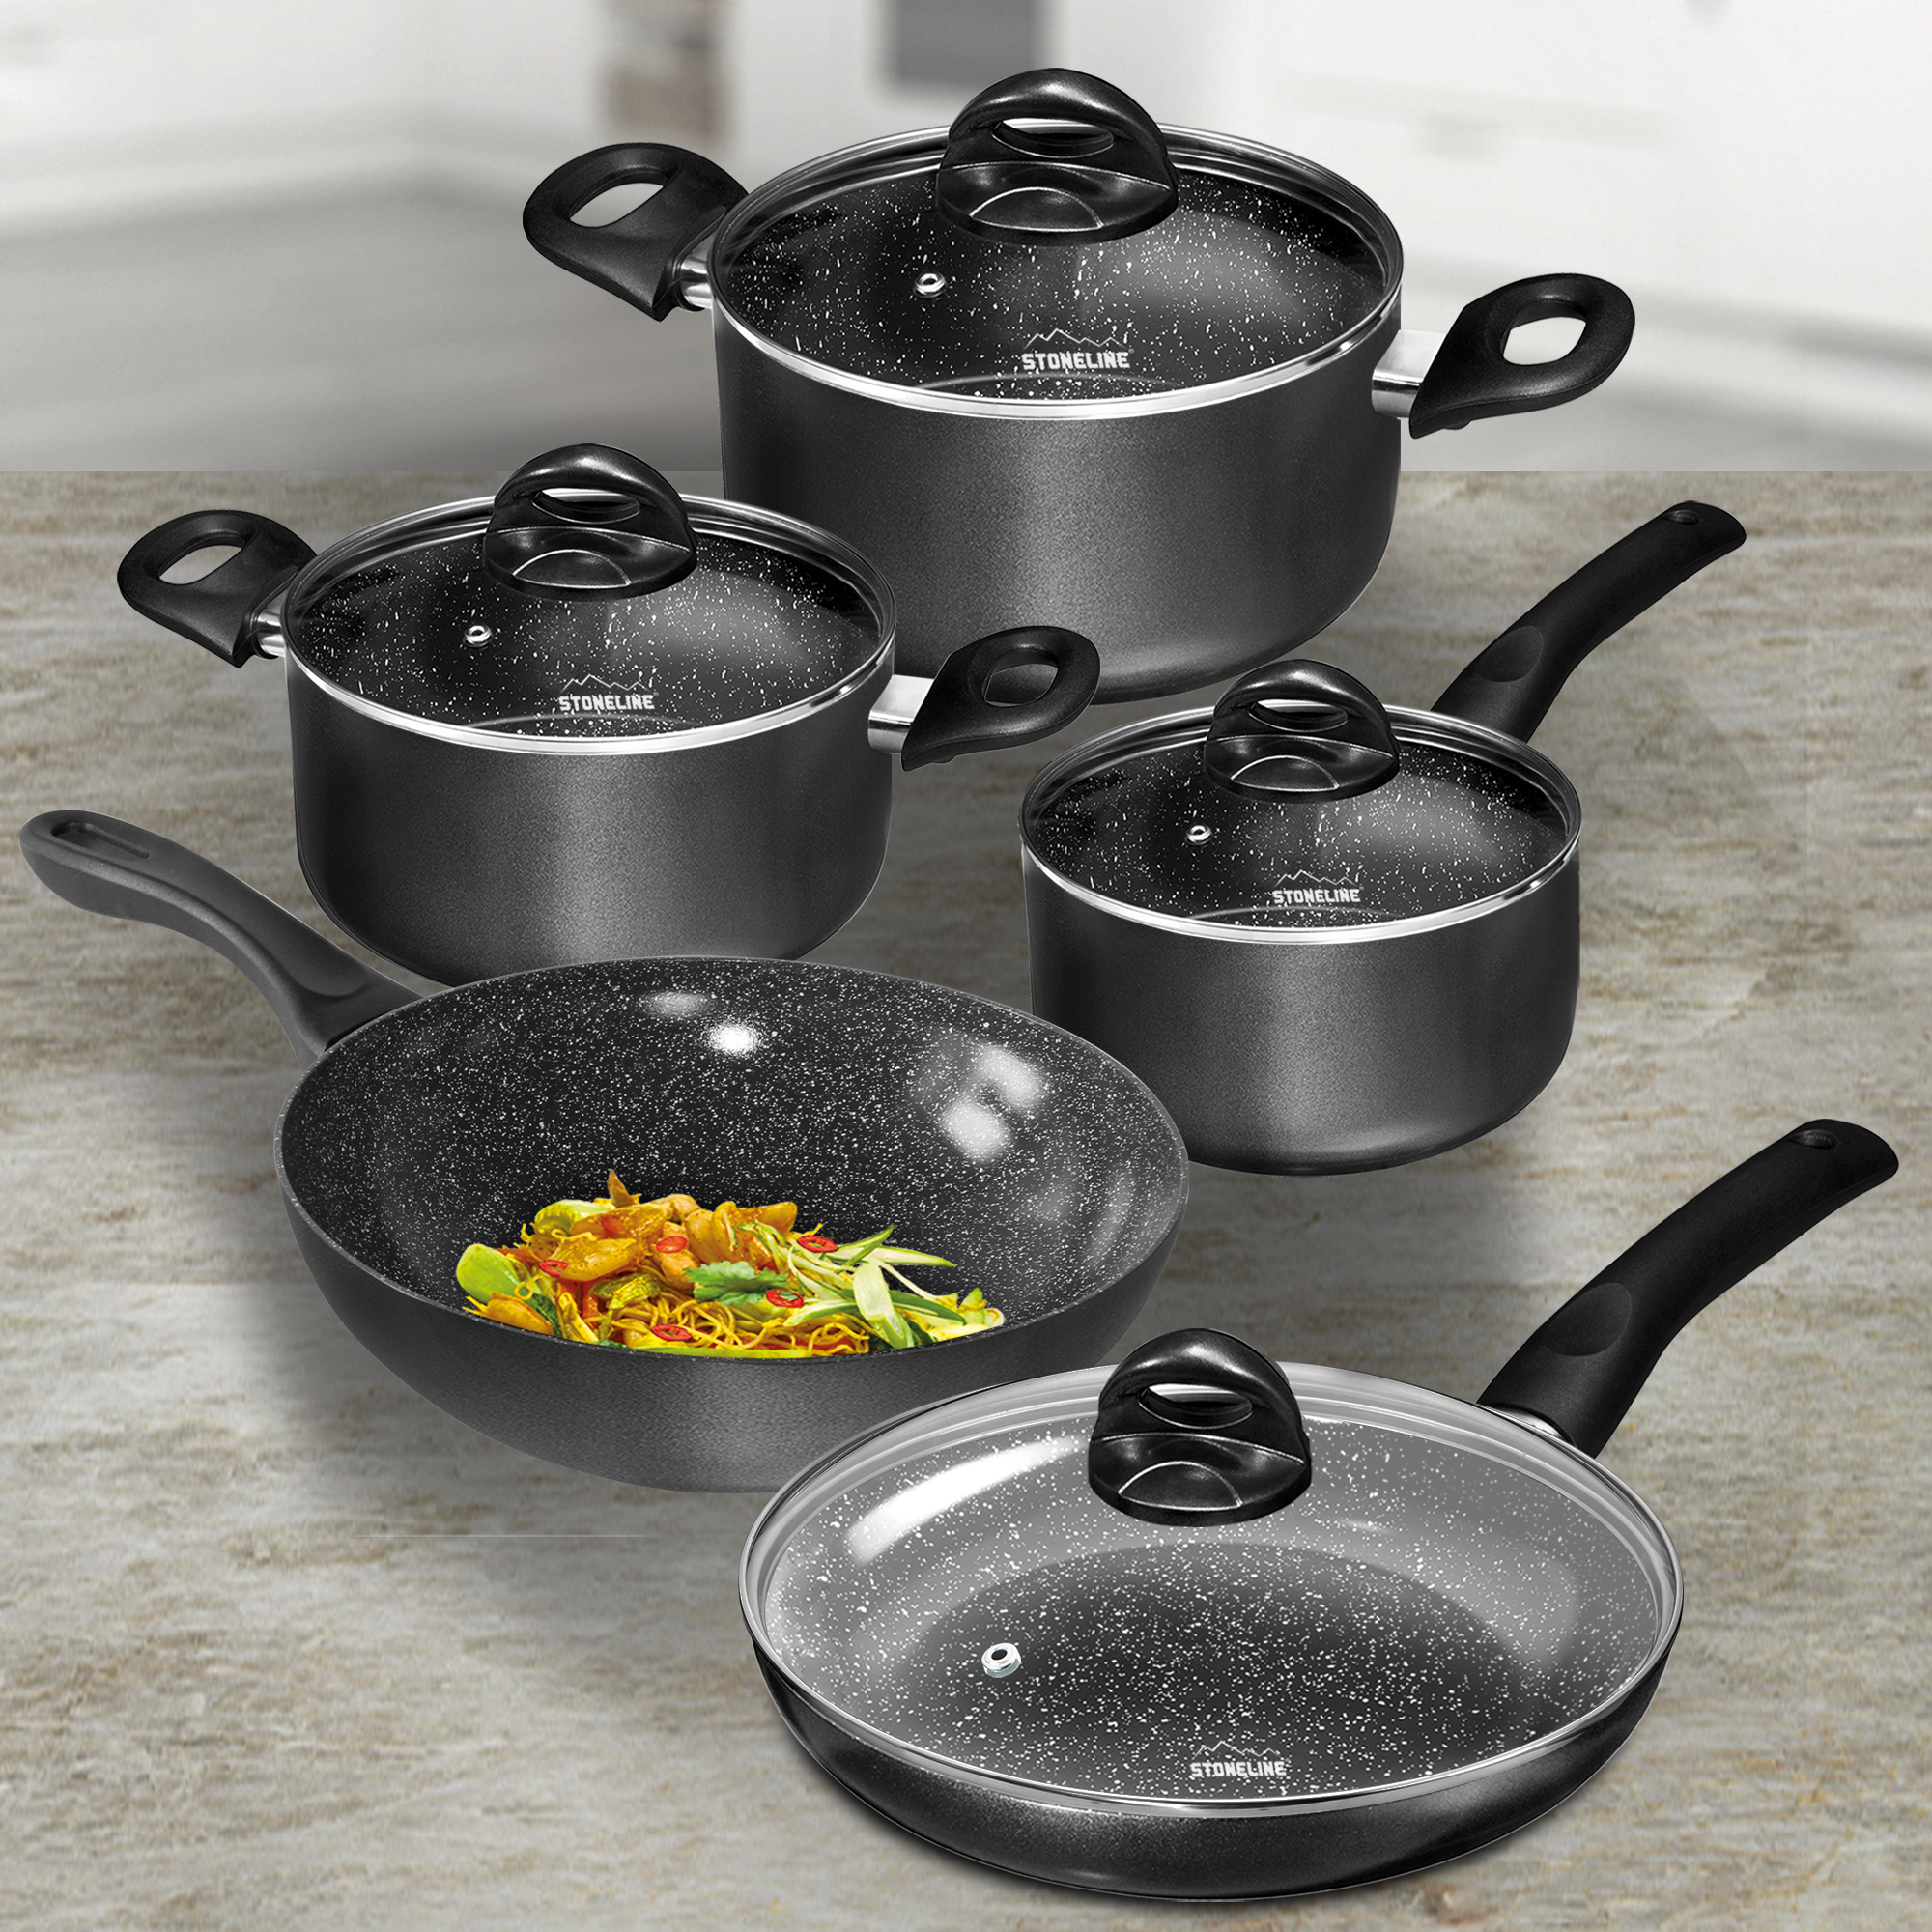 Stoneline Ceramic Cookware Set Set Of 9 With Glass Lids Cookware Sets Cookware Stoneline